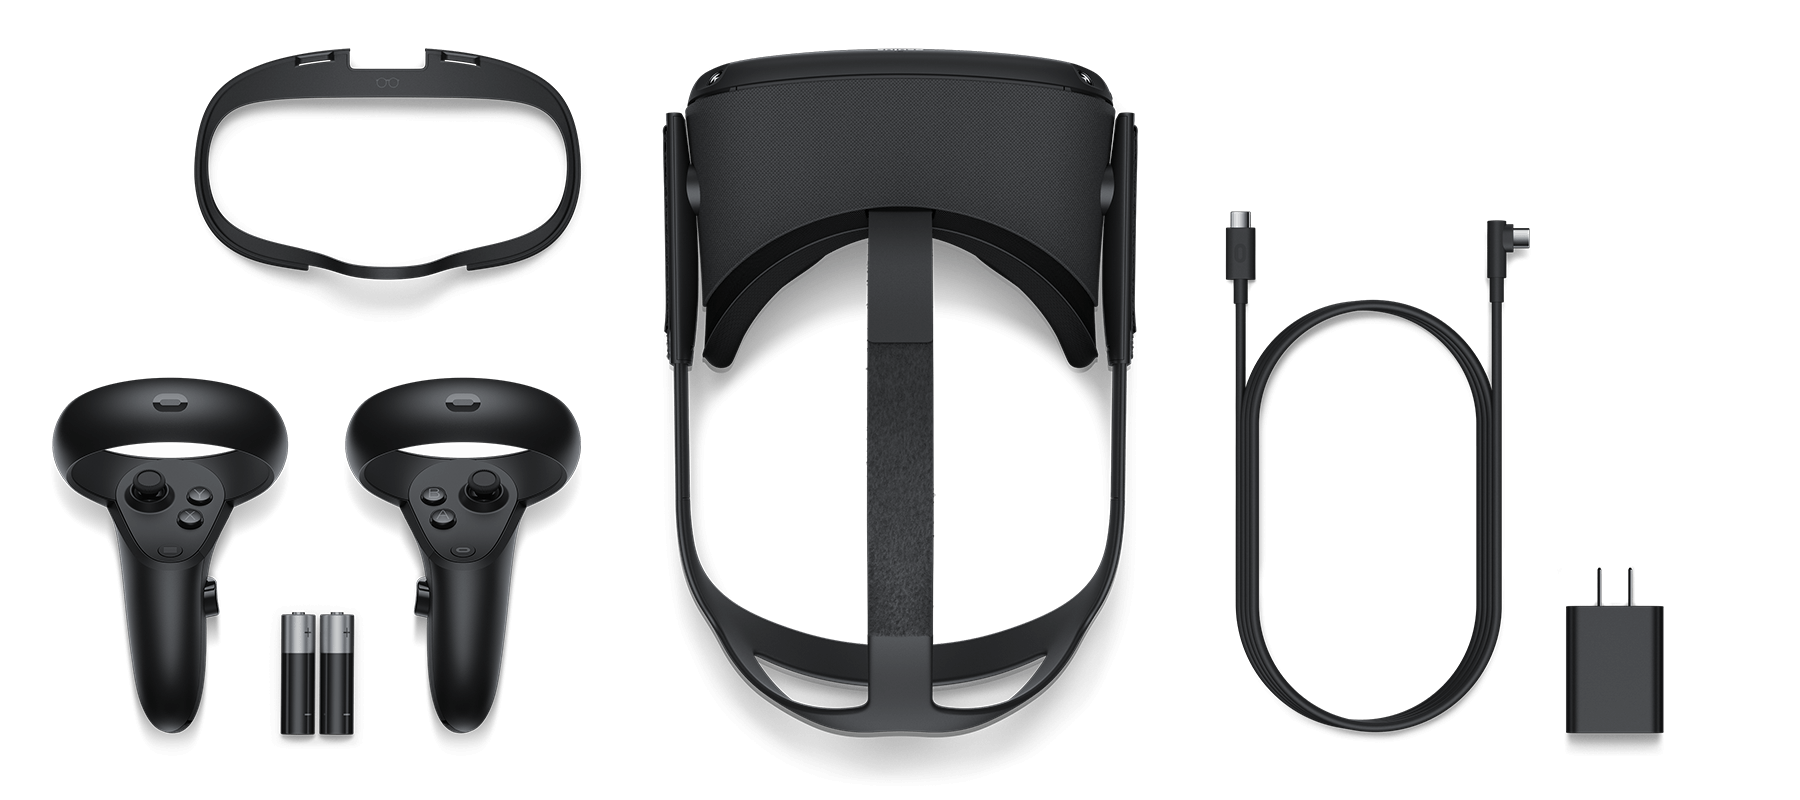 Our first impressions of the new Oculus Quest | Pocket Sized Hands